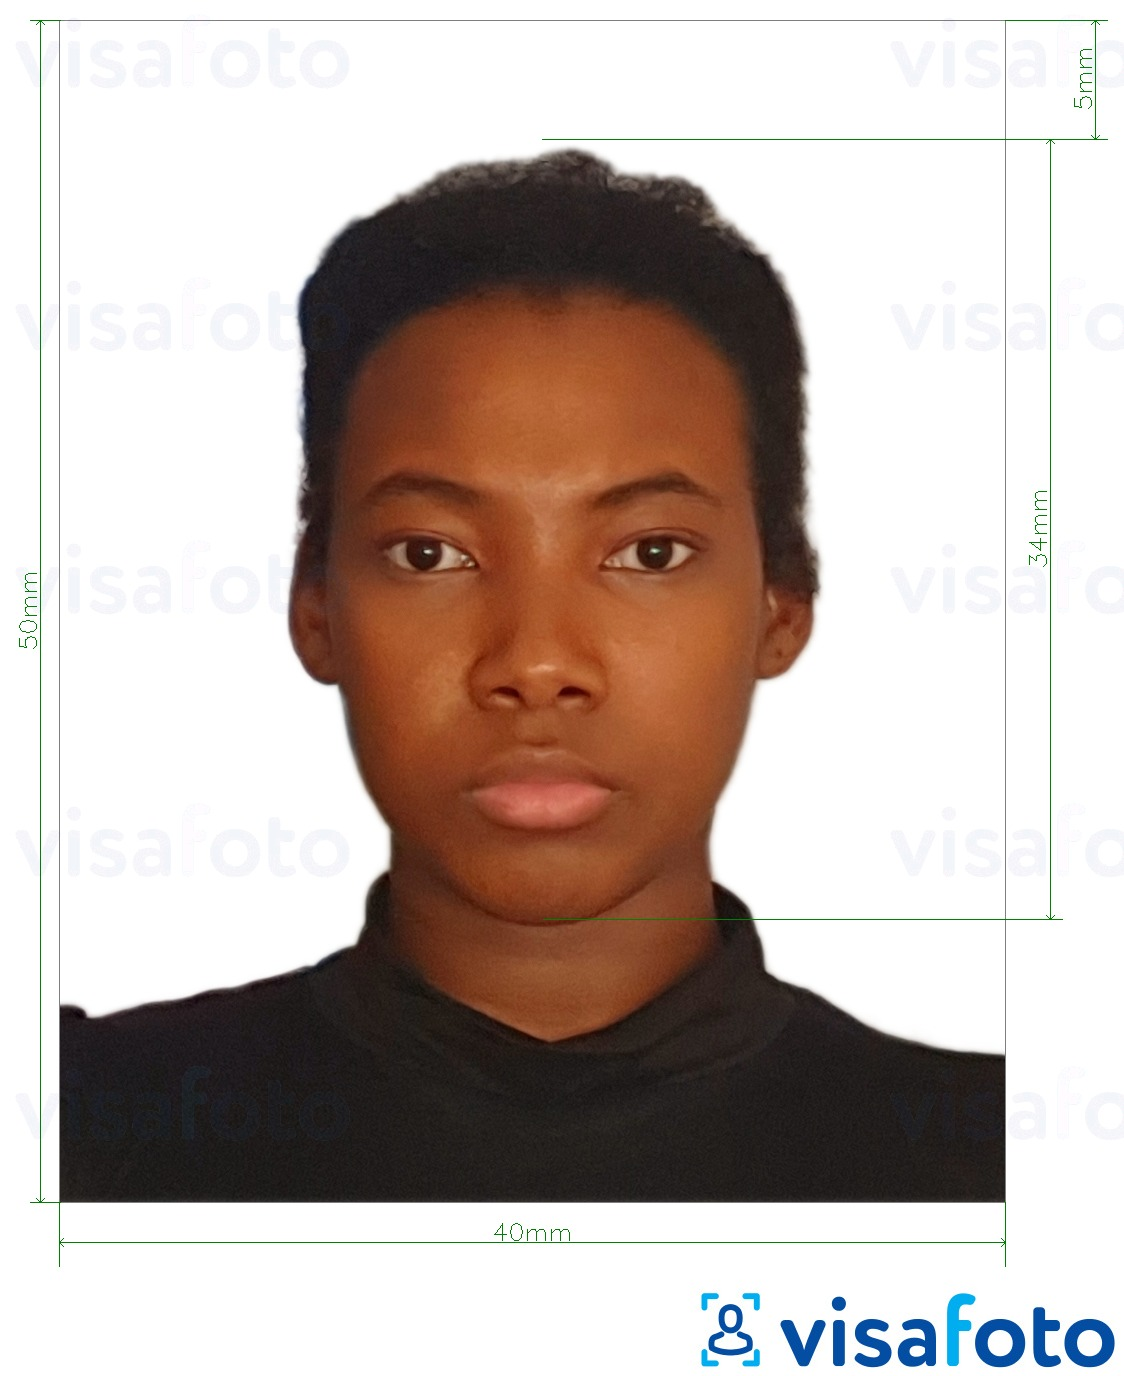 Example of photo for Cameroon passport 4x5 cm (40x50 mm) with exact size specification